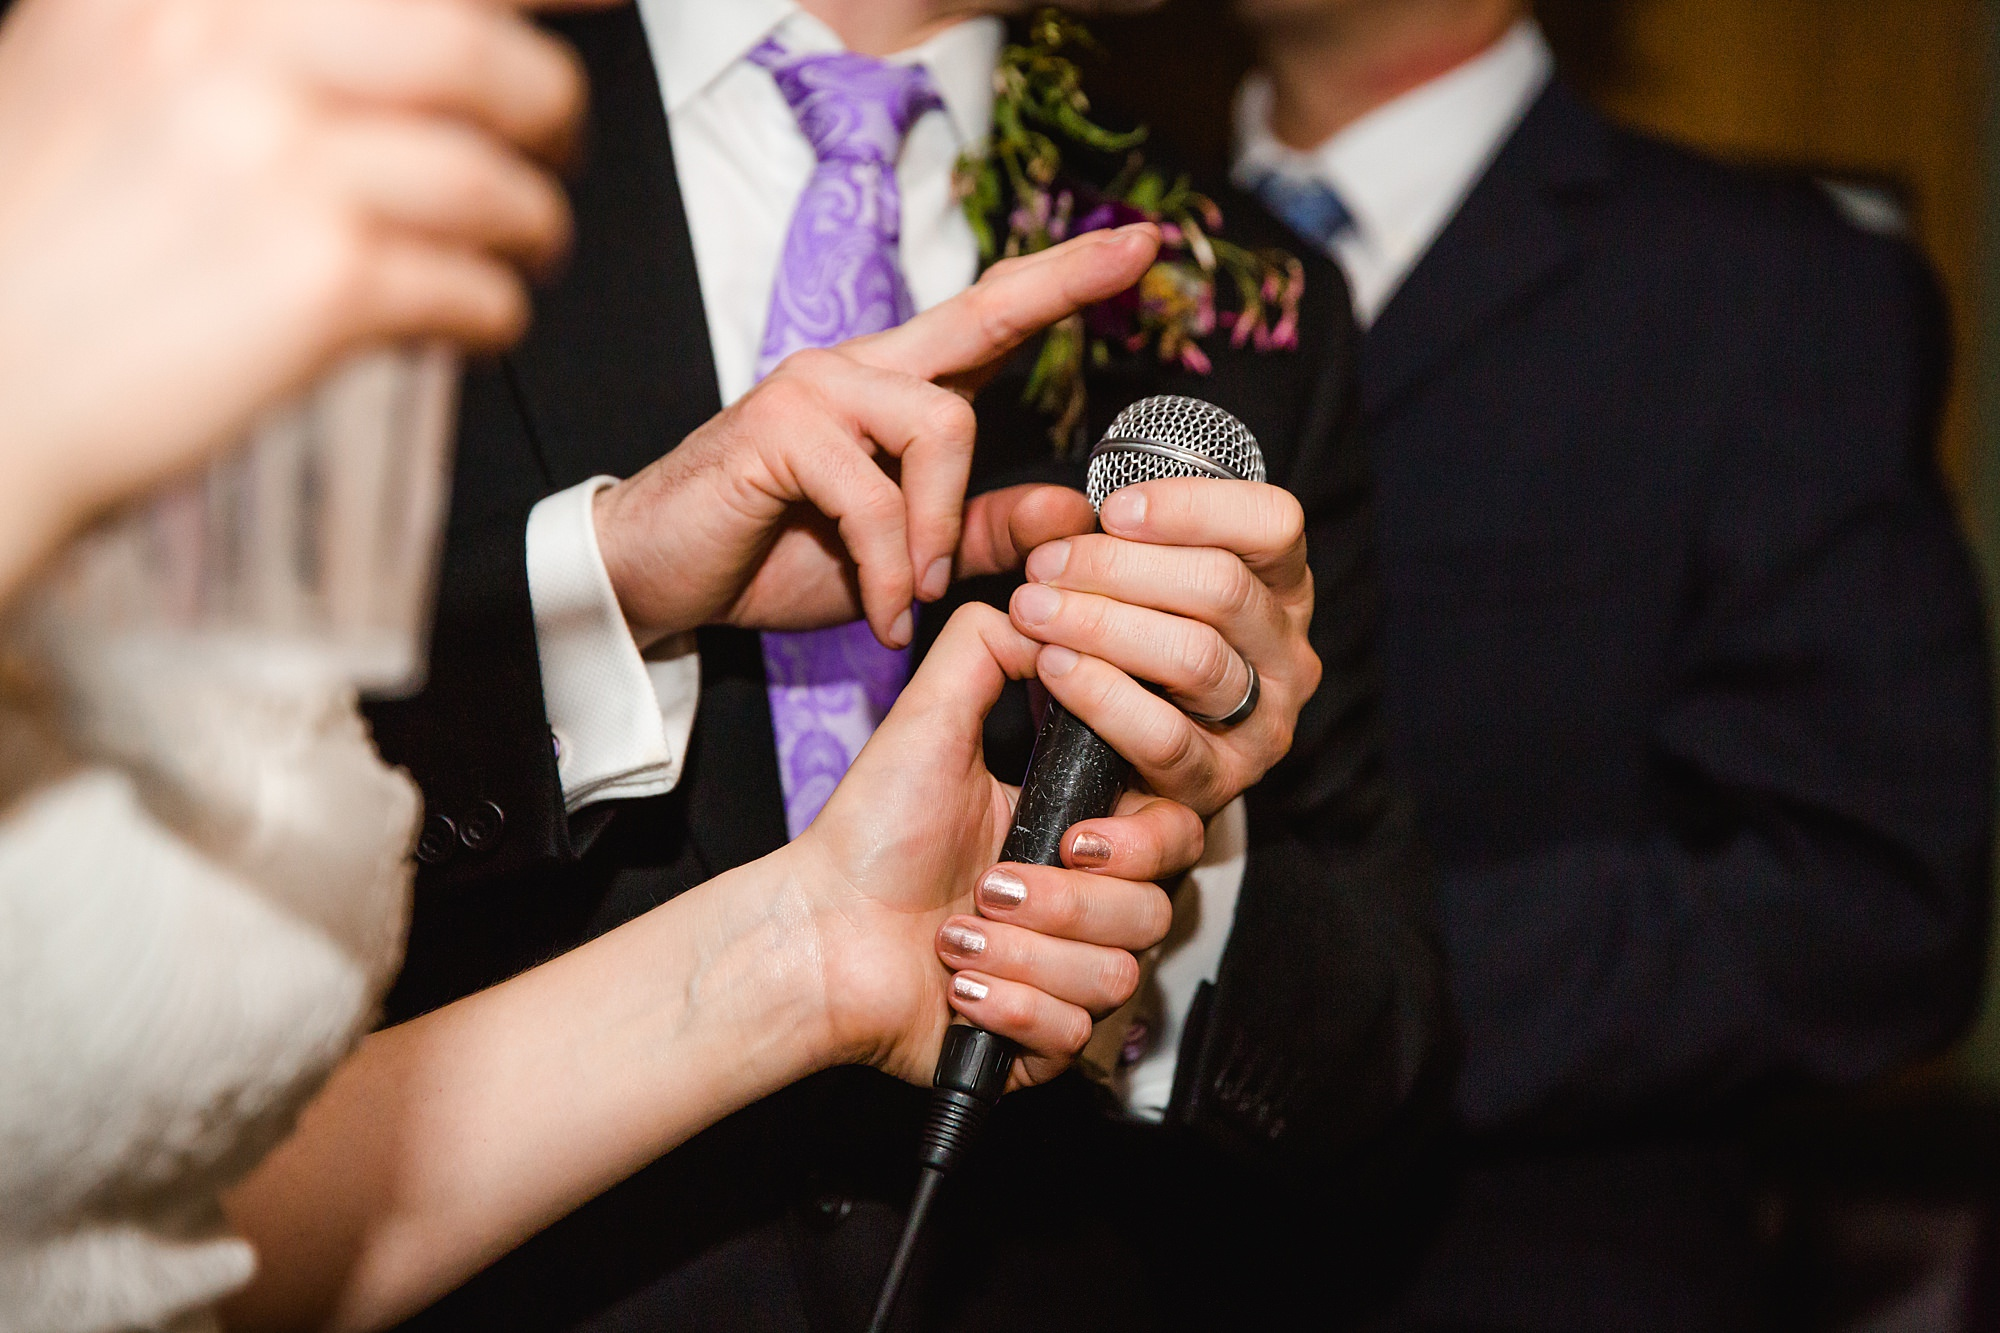 fun london wedding bowling hands holding microphone